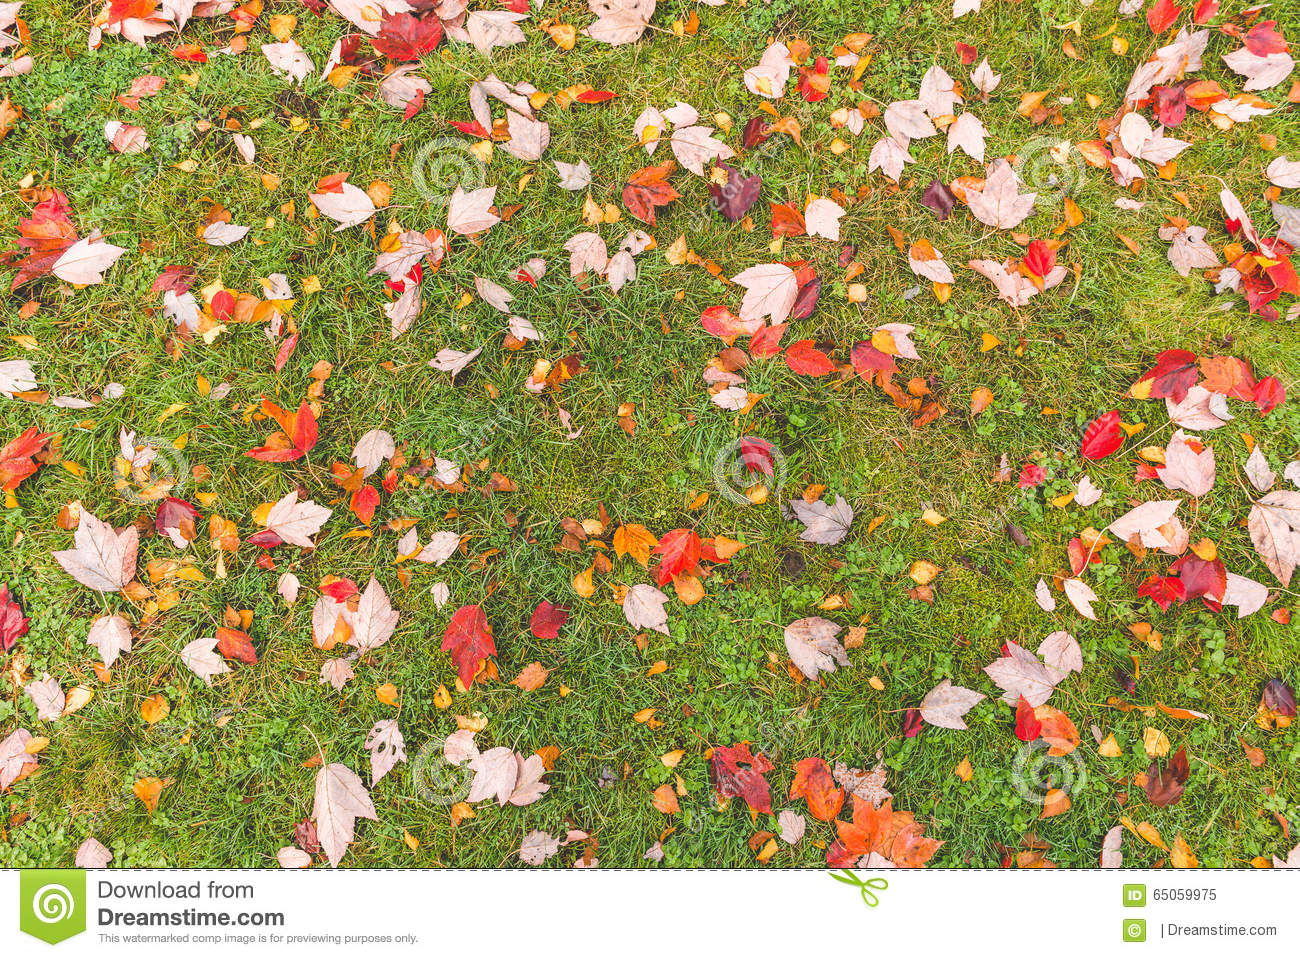 Colorful maple leave on the ground,lawn for background in the park.